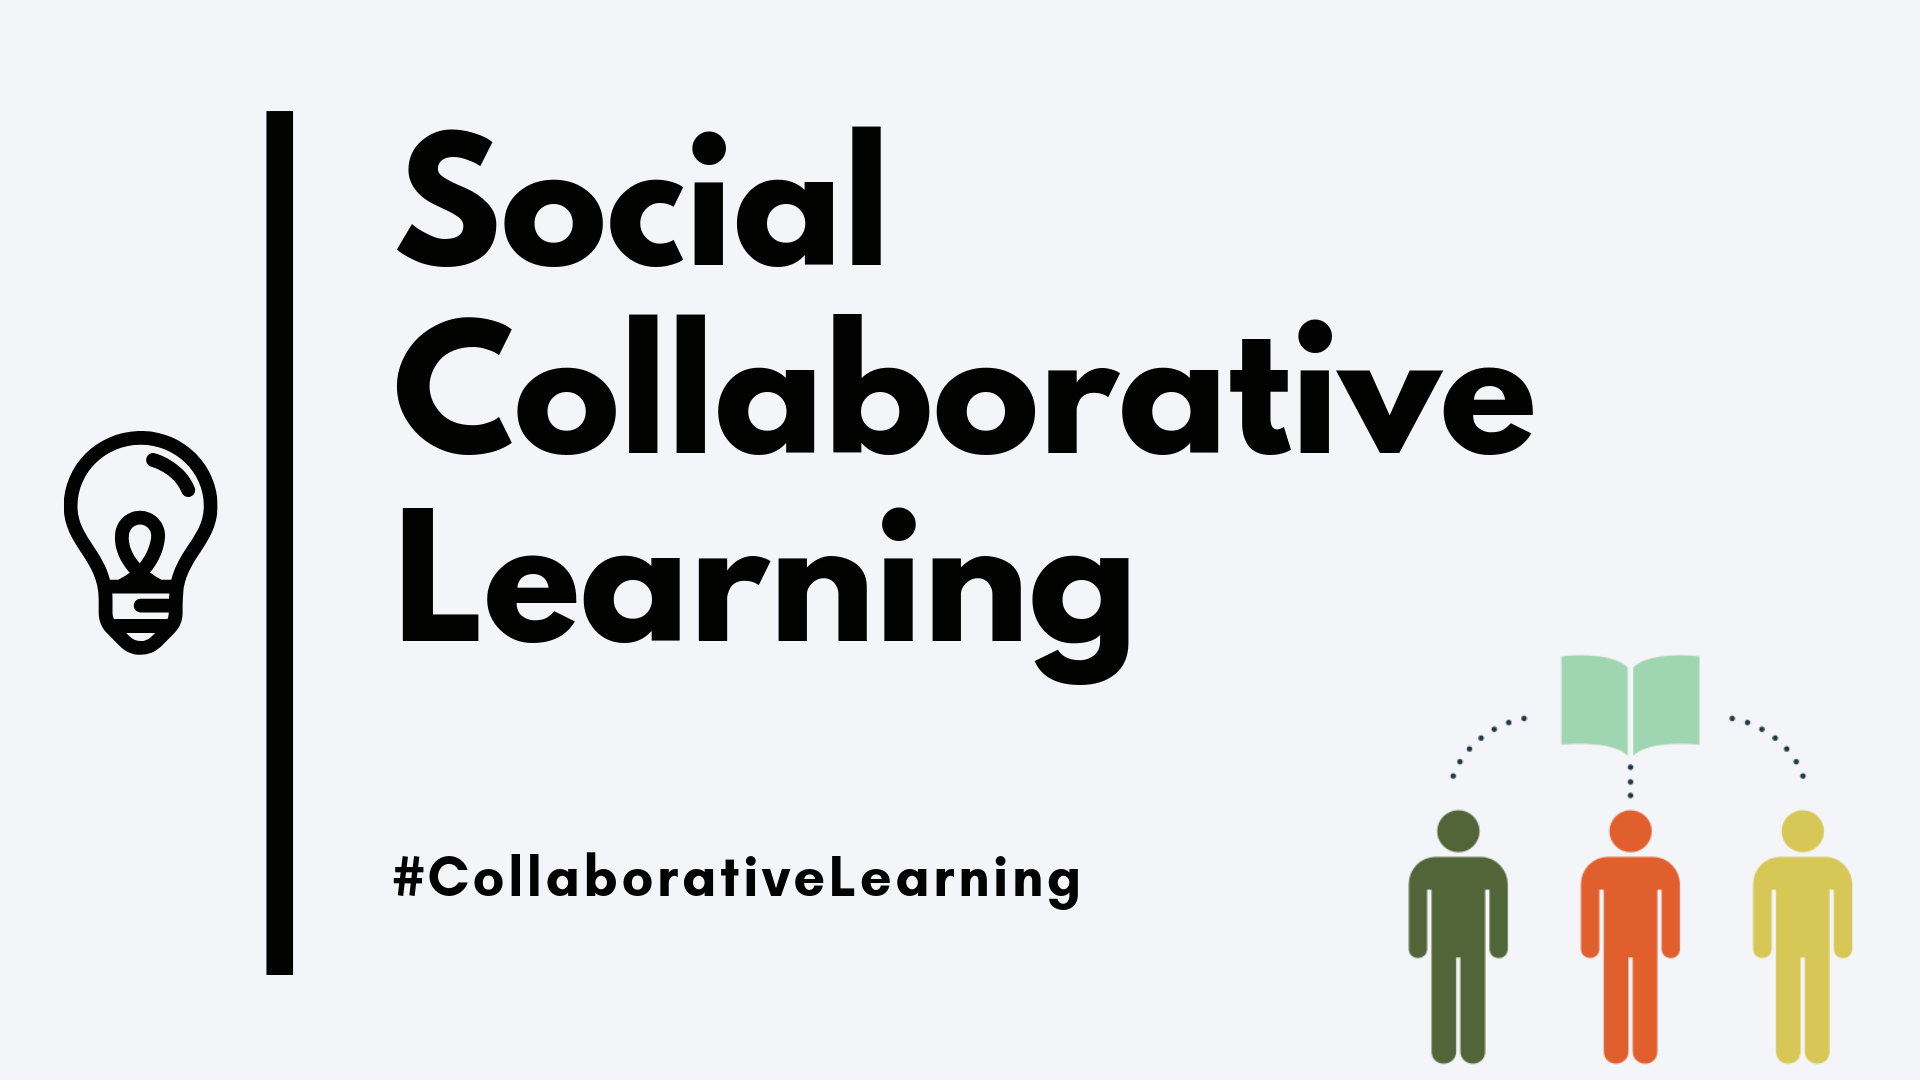 Social Collaborative Learning platform